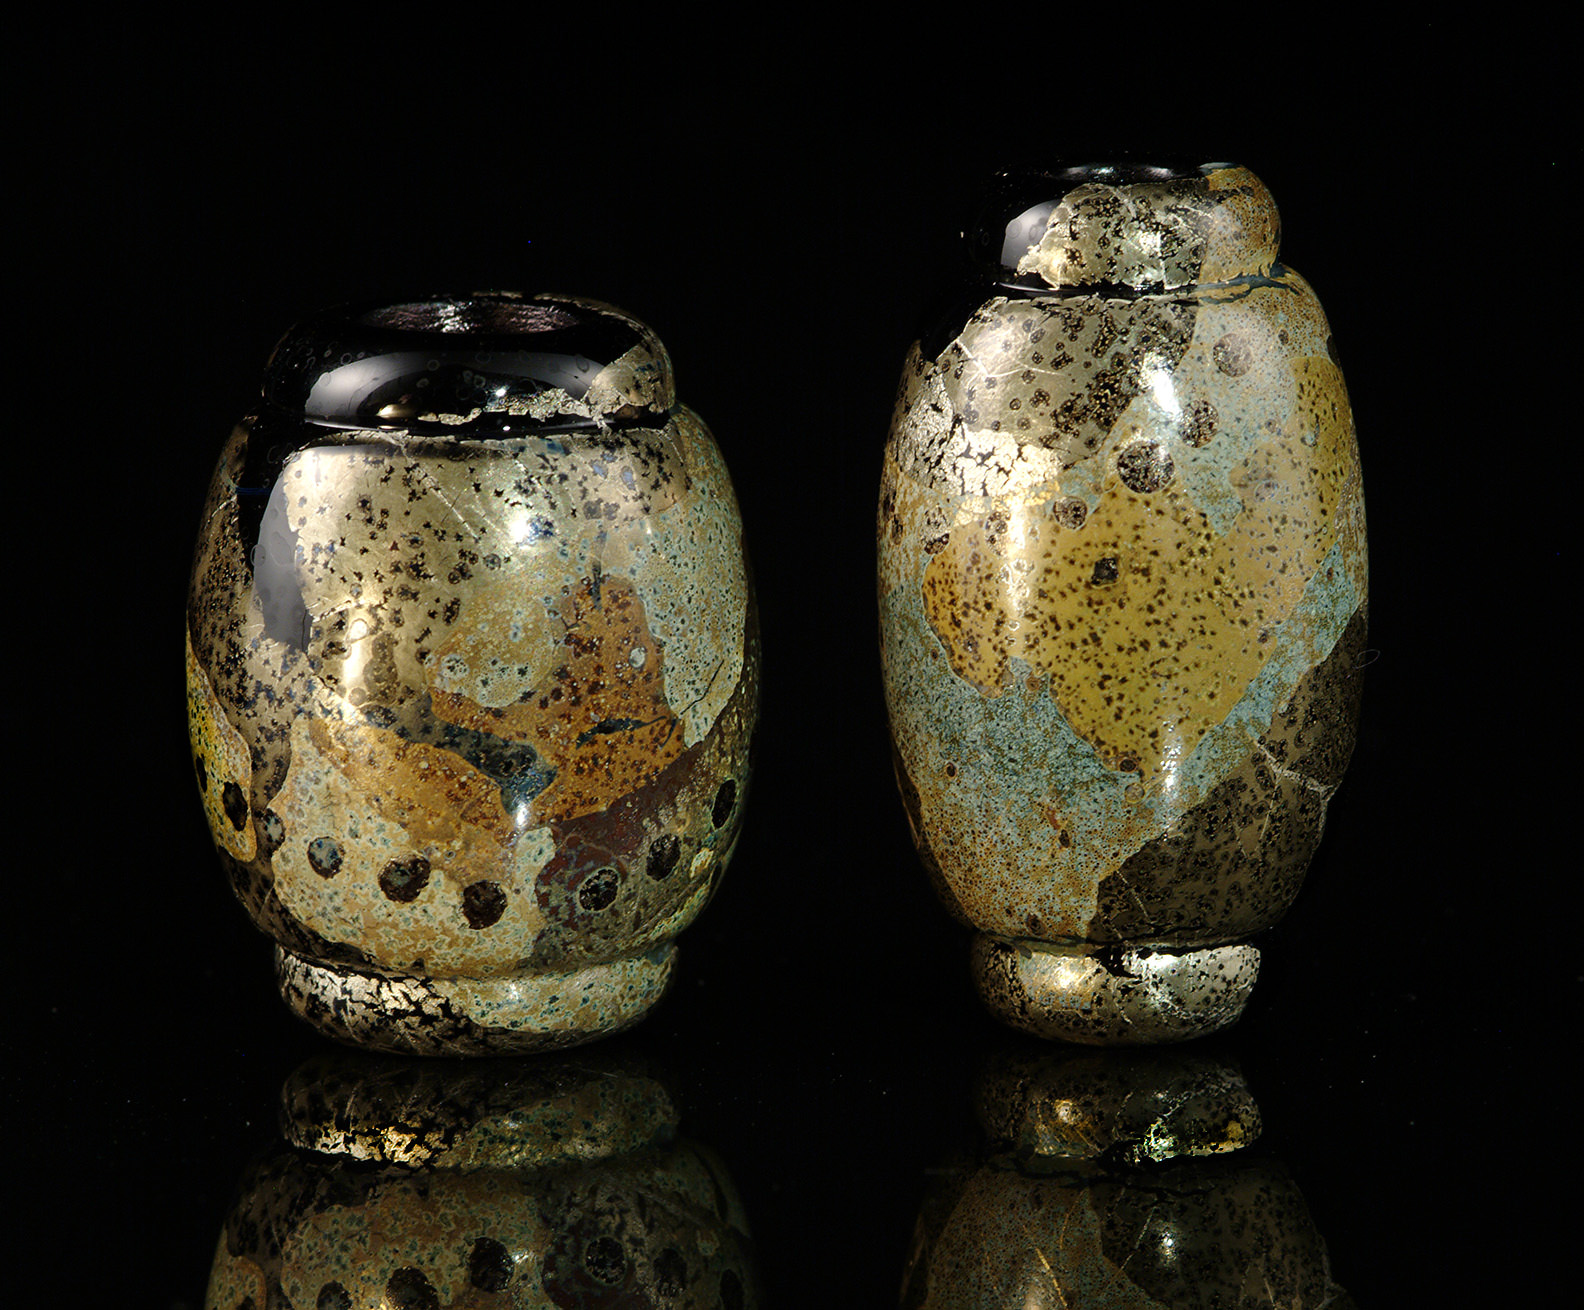 """""""Nebula Black Vessel Beads"""", with silver and gold colorants, tallest bead about 3 cm. 2000-2001."""